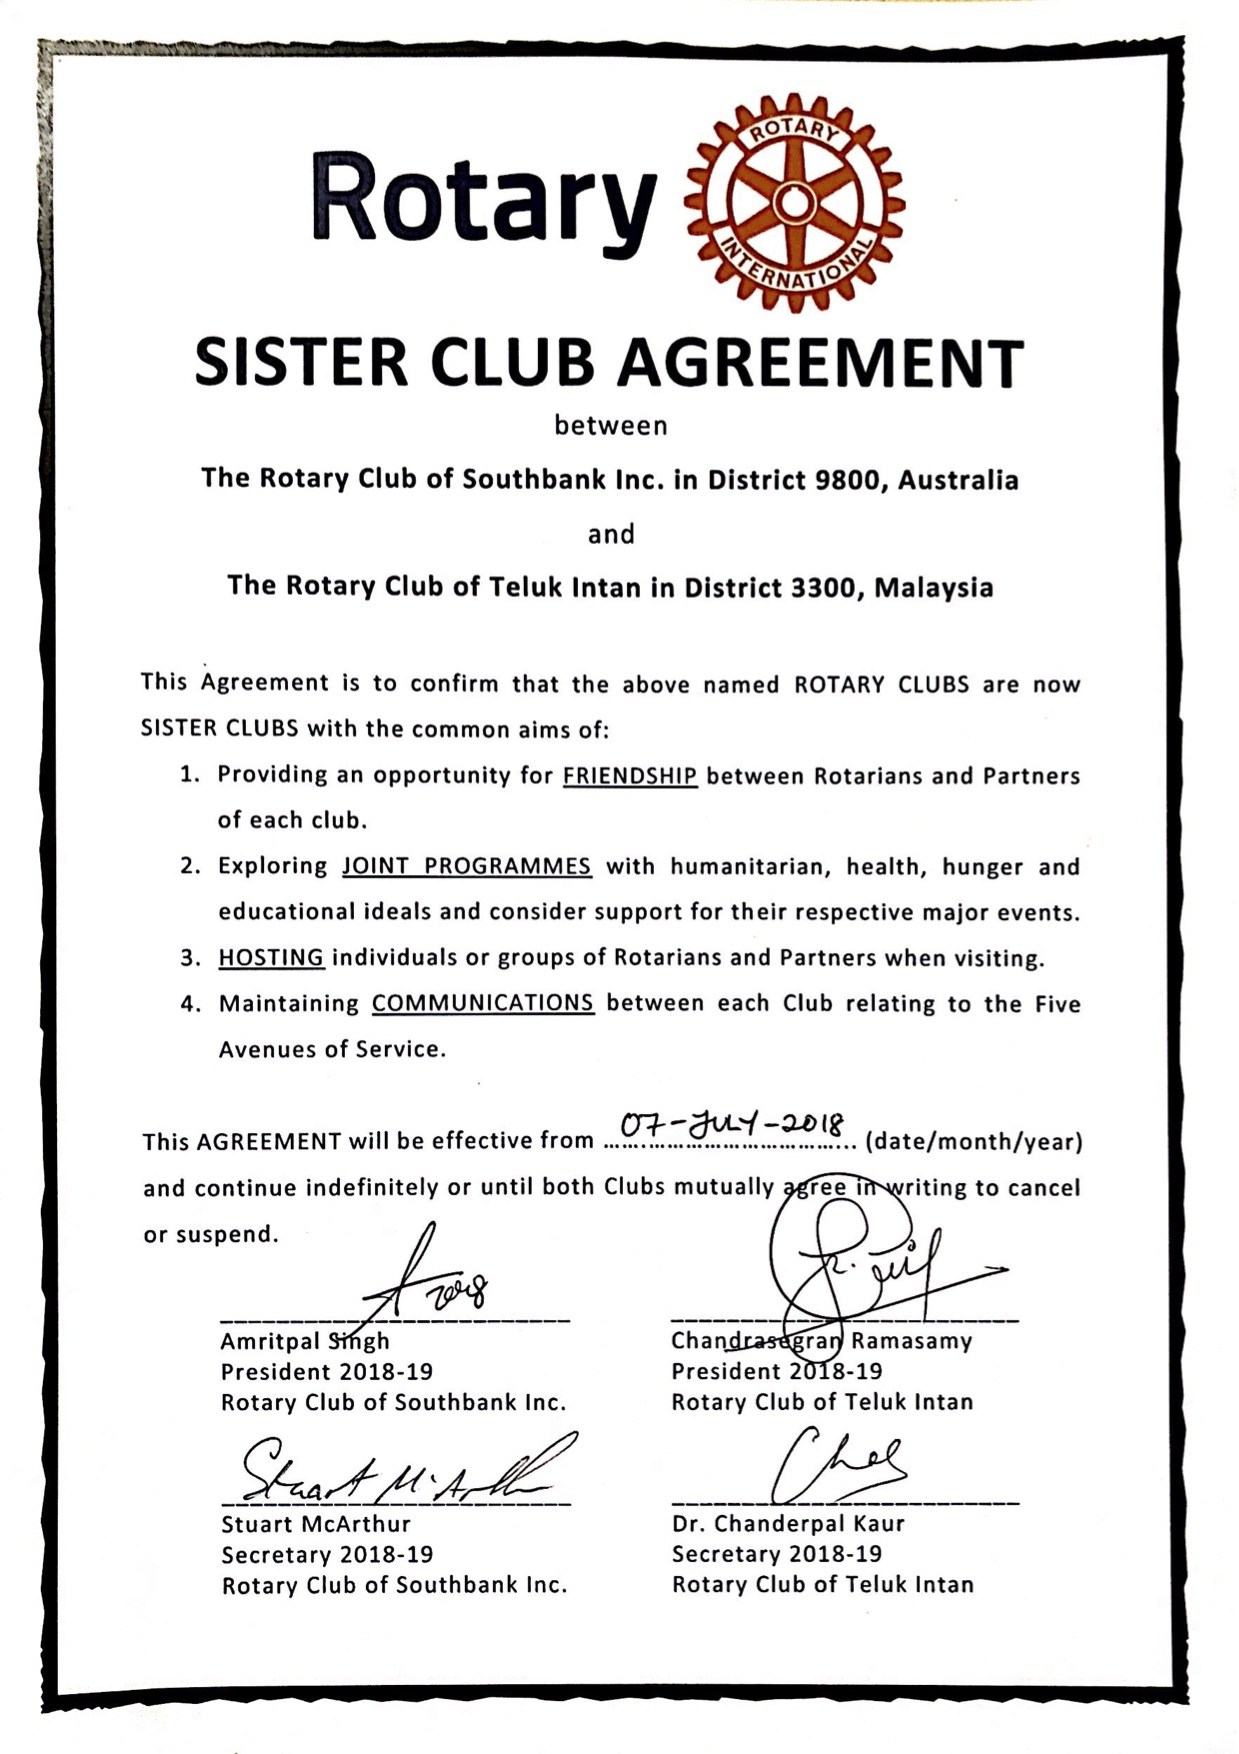 SIGNED_Sister_Club_Agreement_SouthbankTelukIntan.jpg